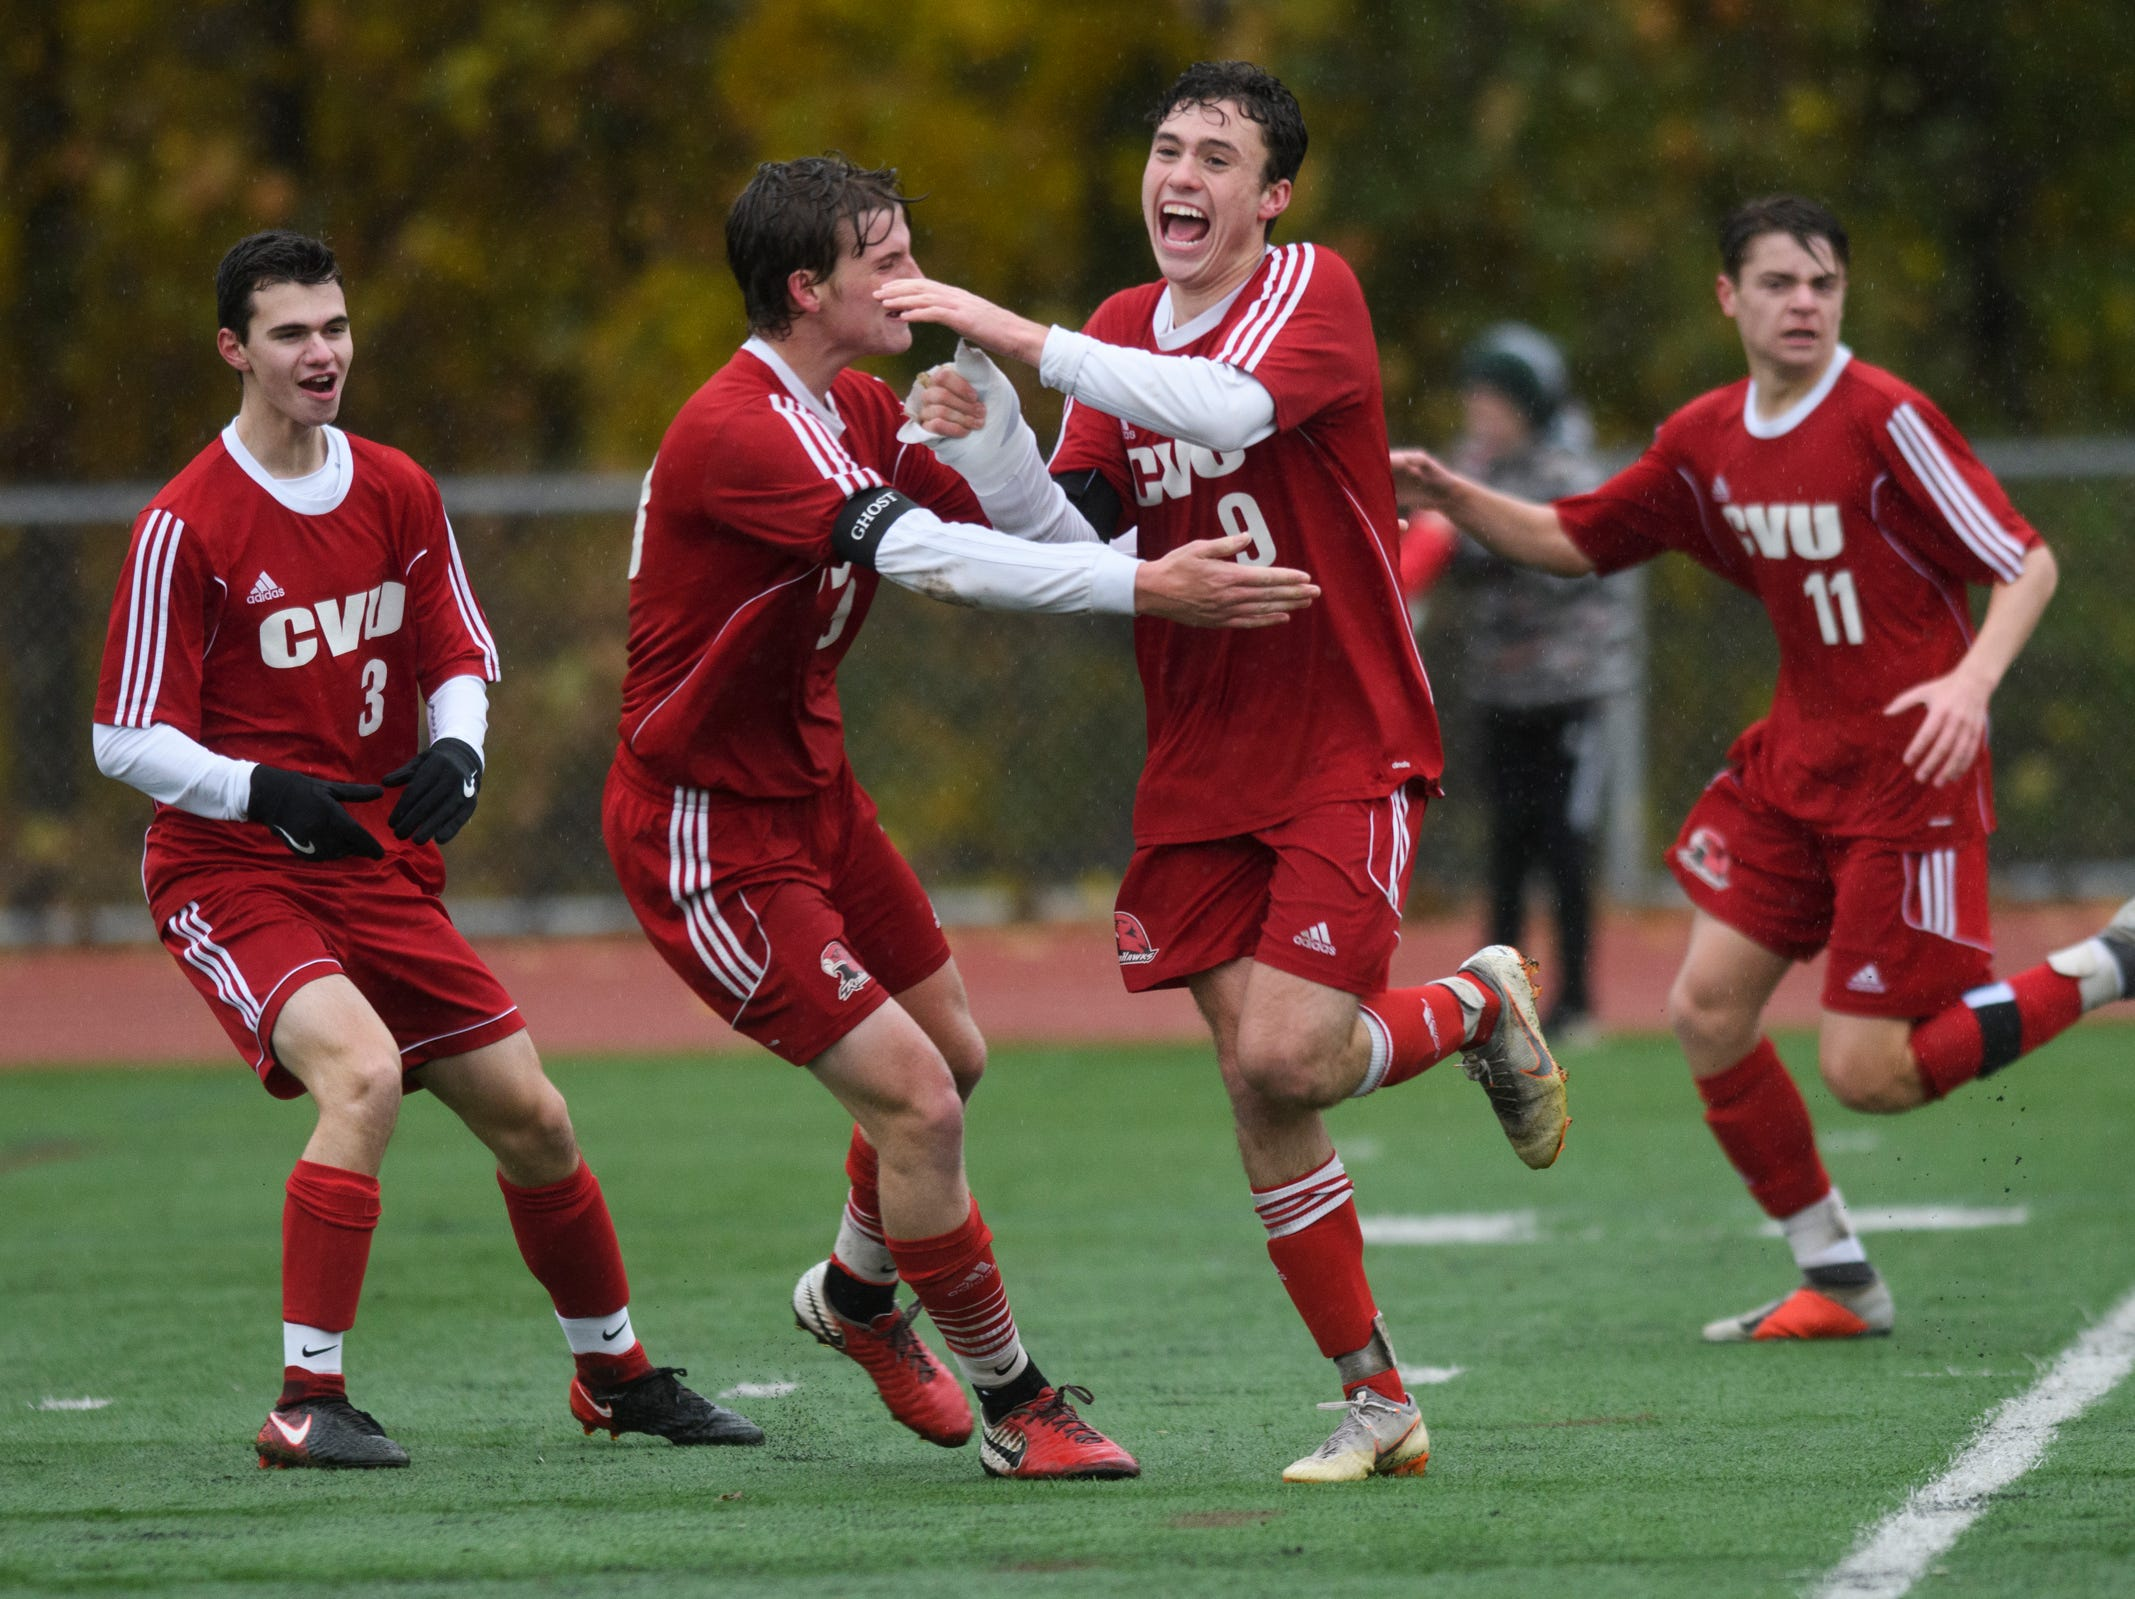 CVU's Jonah Roberts (9), Enzo Delia (8), Caleb Martin (11) and Jacob Allaire (3) celebrate a goal during the Division I boys soccer championship game between the St. Johnsbury Hilltoppers and the Champlain Valley Union Redhawks at Buck Hard Field on Saturday morning November 3, 2018 in Burlington.